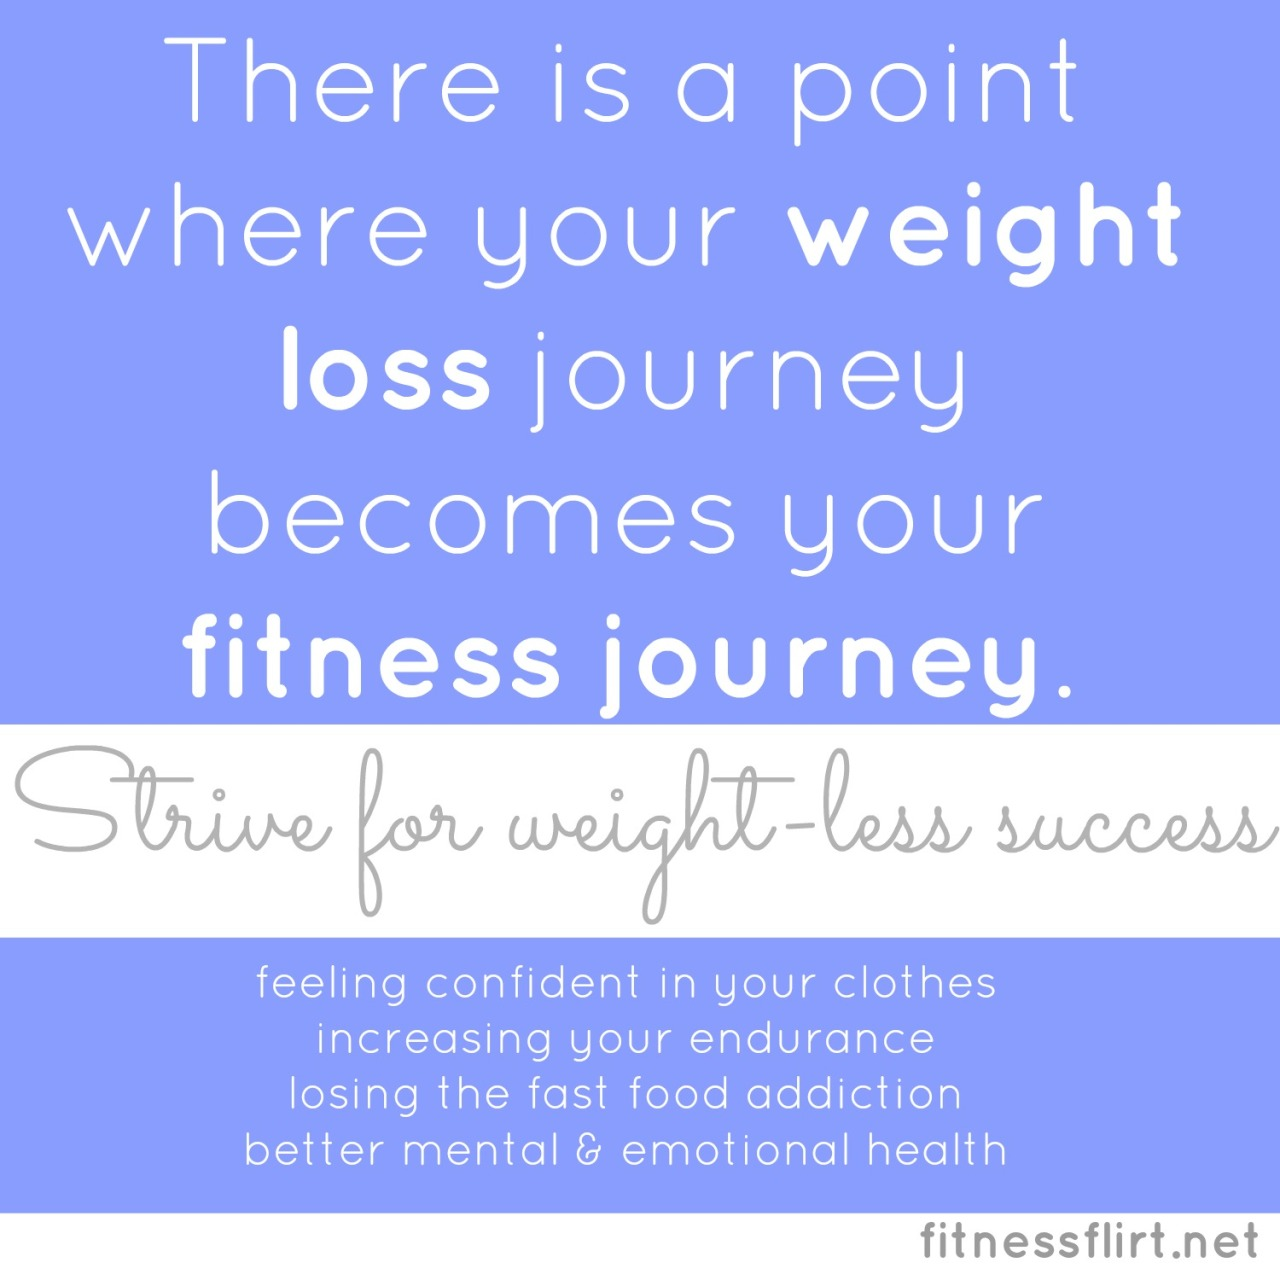 It takes some time but it will happen. There is a fitness metamorphosis that usually takes 5 steps. Where are you on your journey